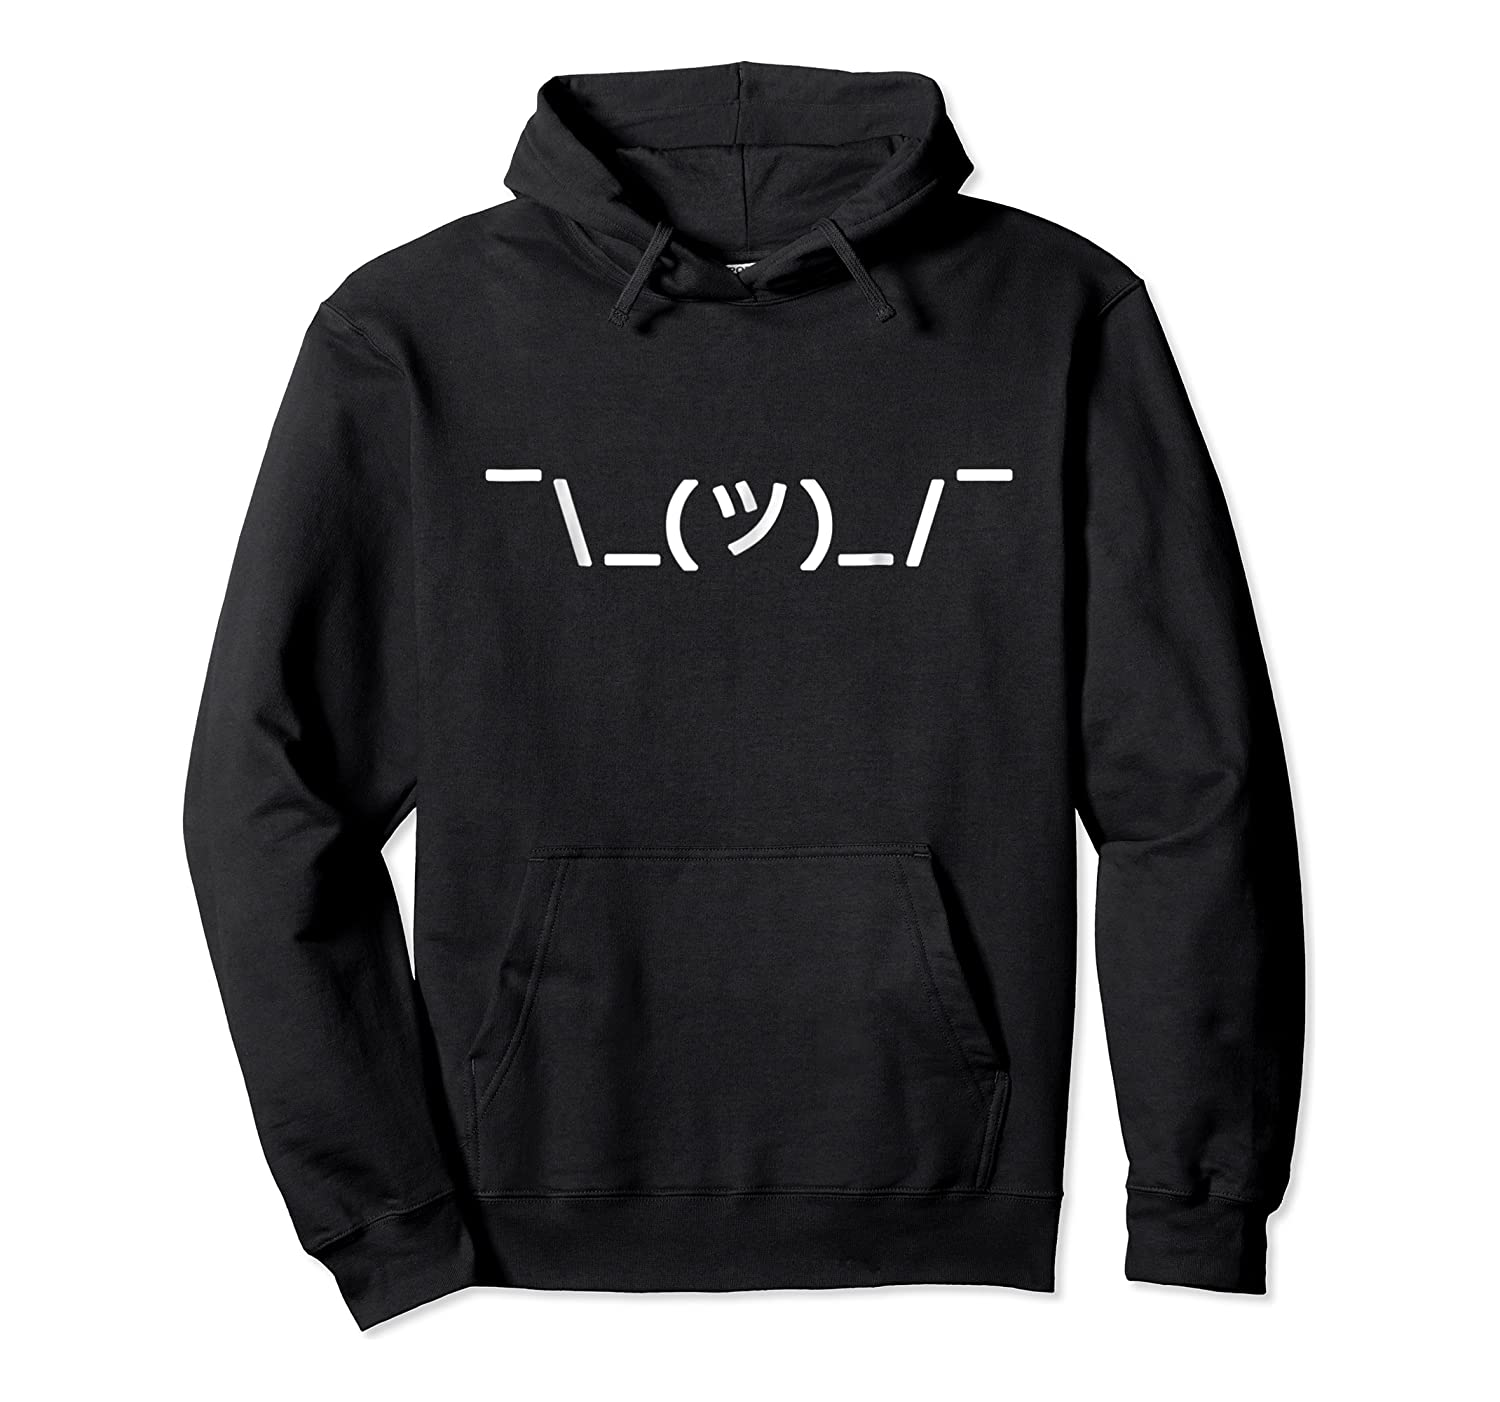 Text Shrug Whatever Funny Ascii Shirts Unisex Pullover Hoodie